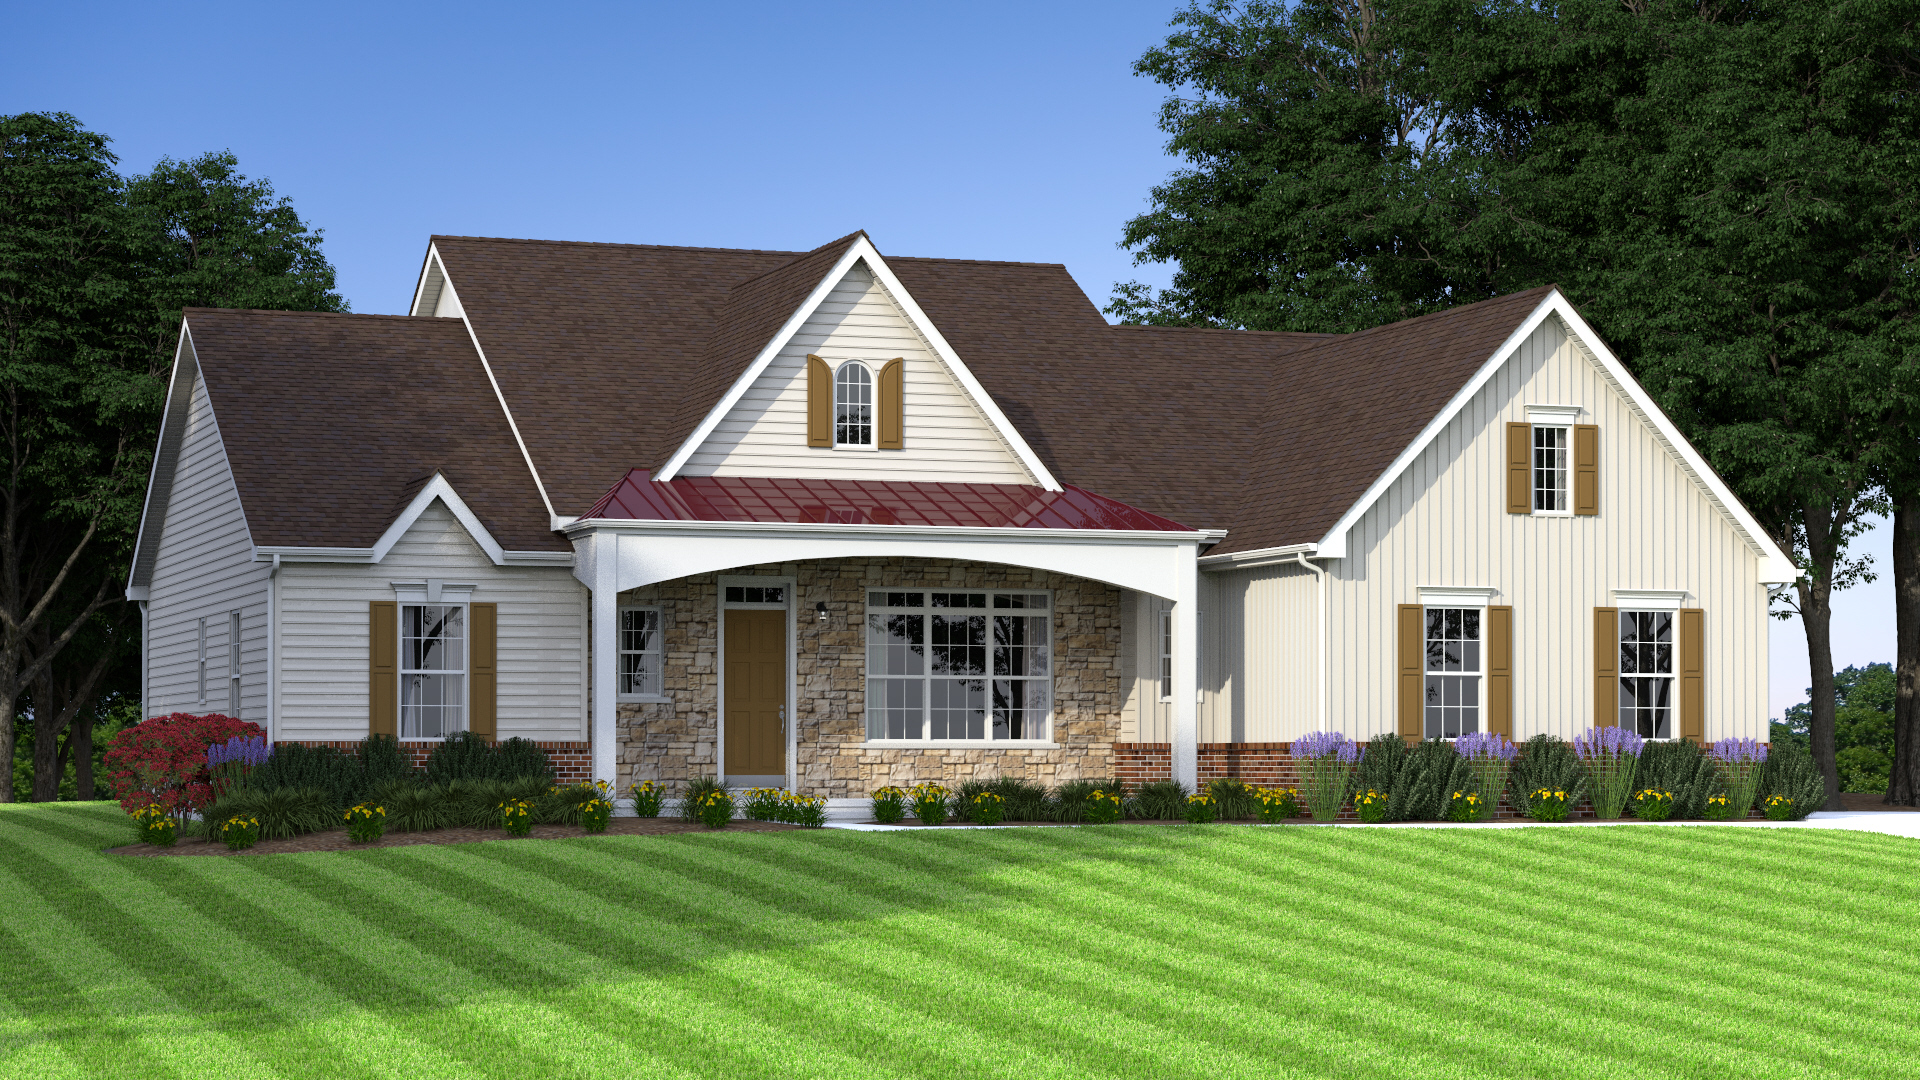 The Jefferson Grand  2,700 sf / 3 br / 2 ba / 2 car garage Starting at $467,990